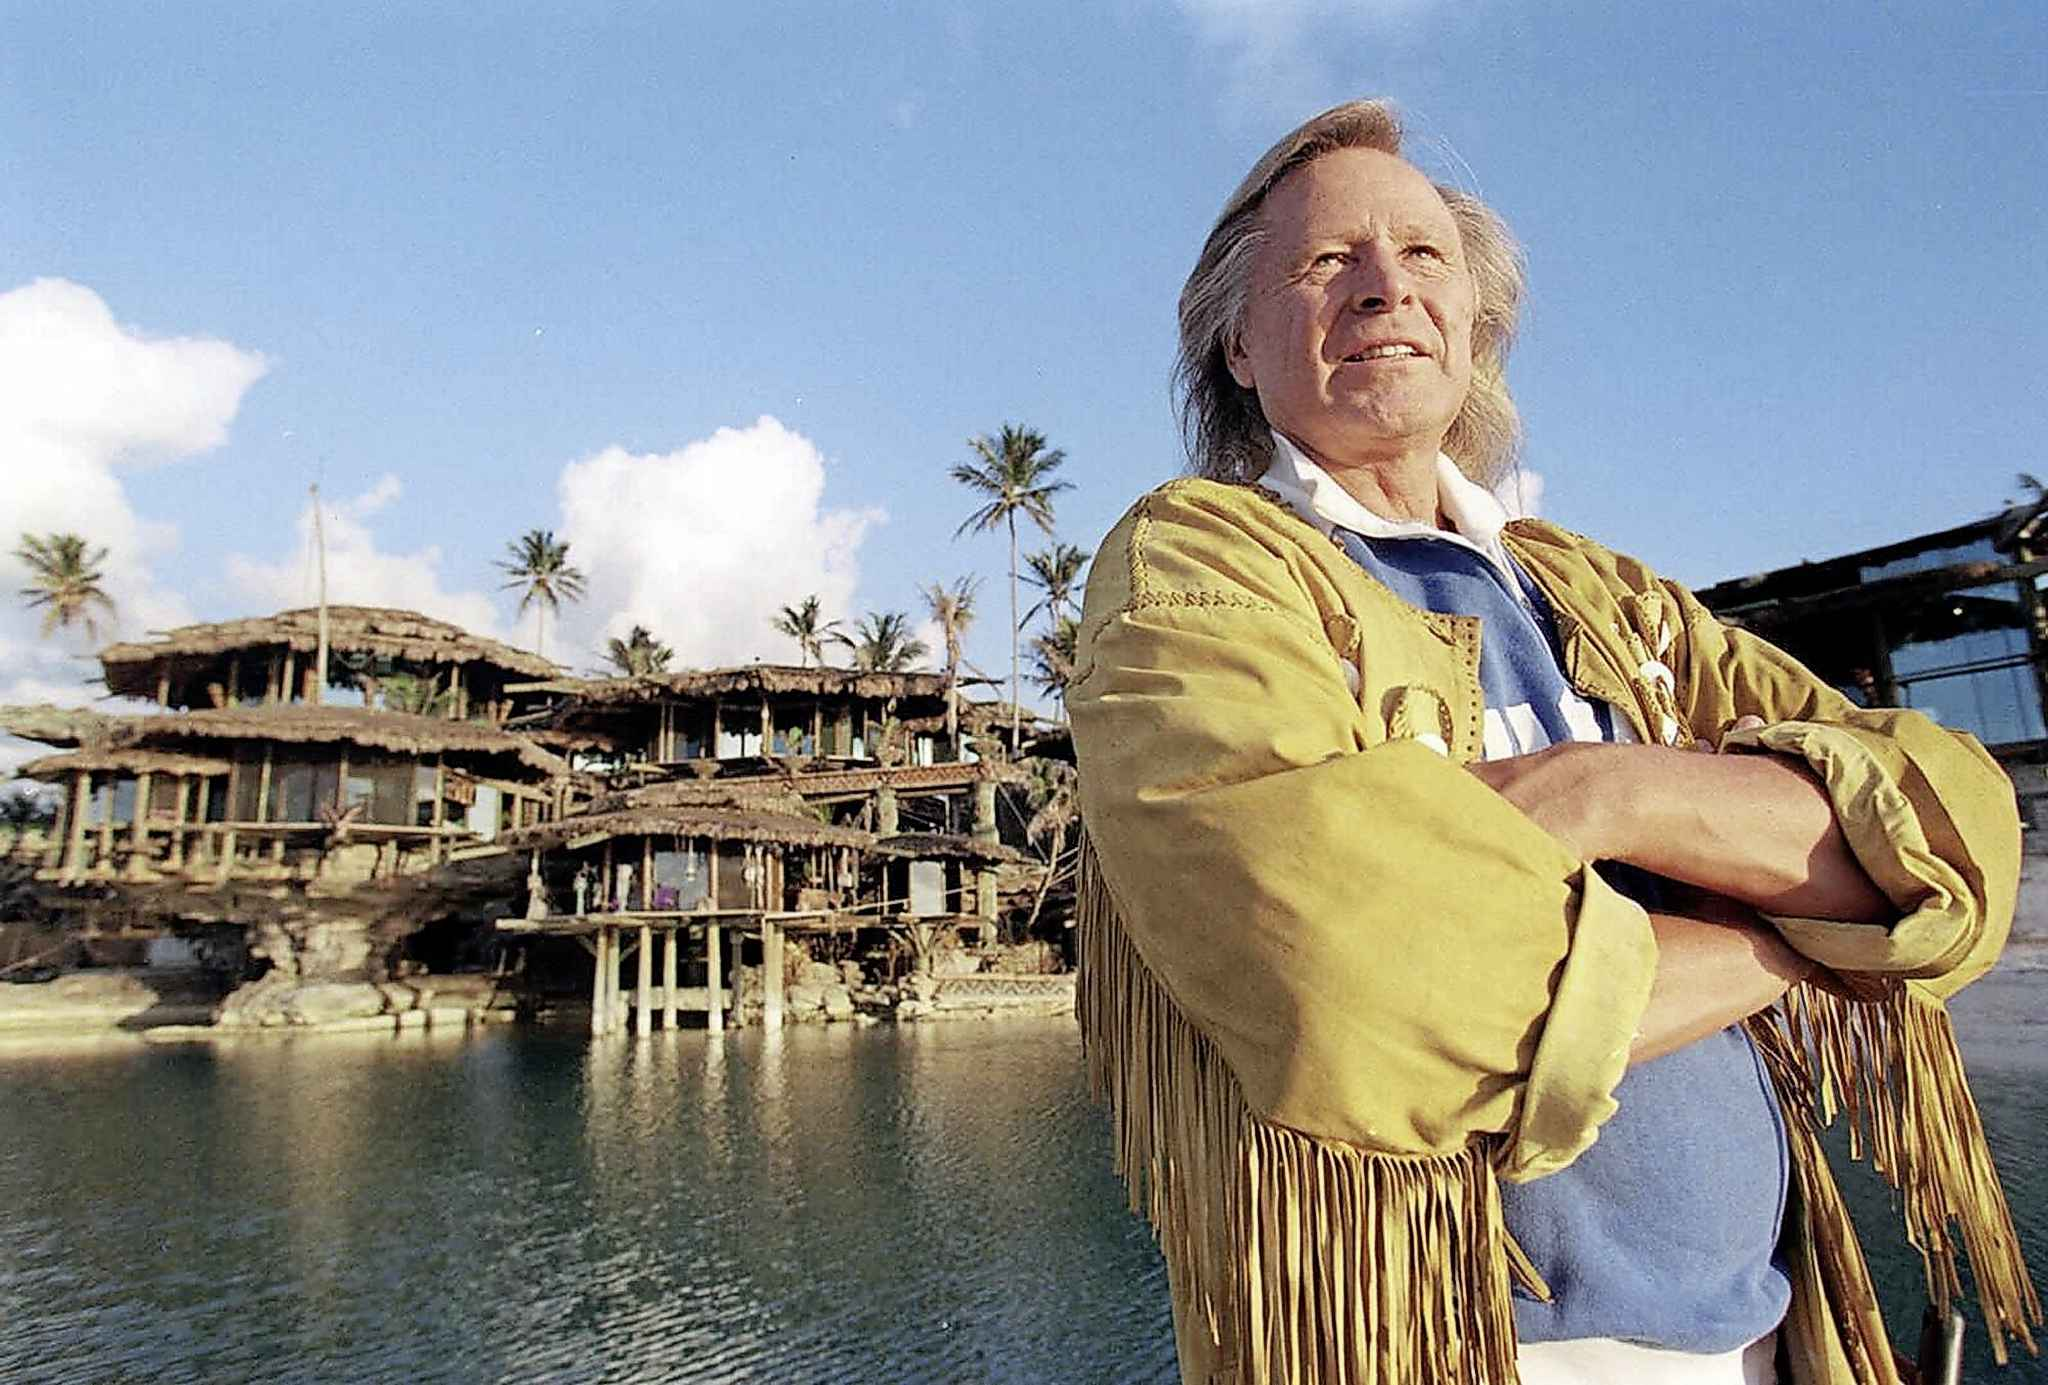 Nygard at his Bahamas home.